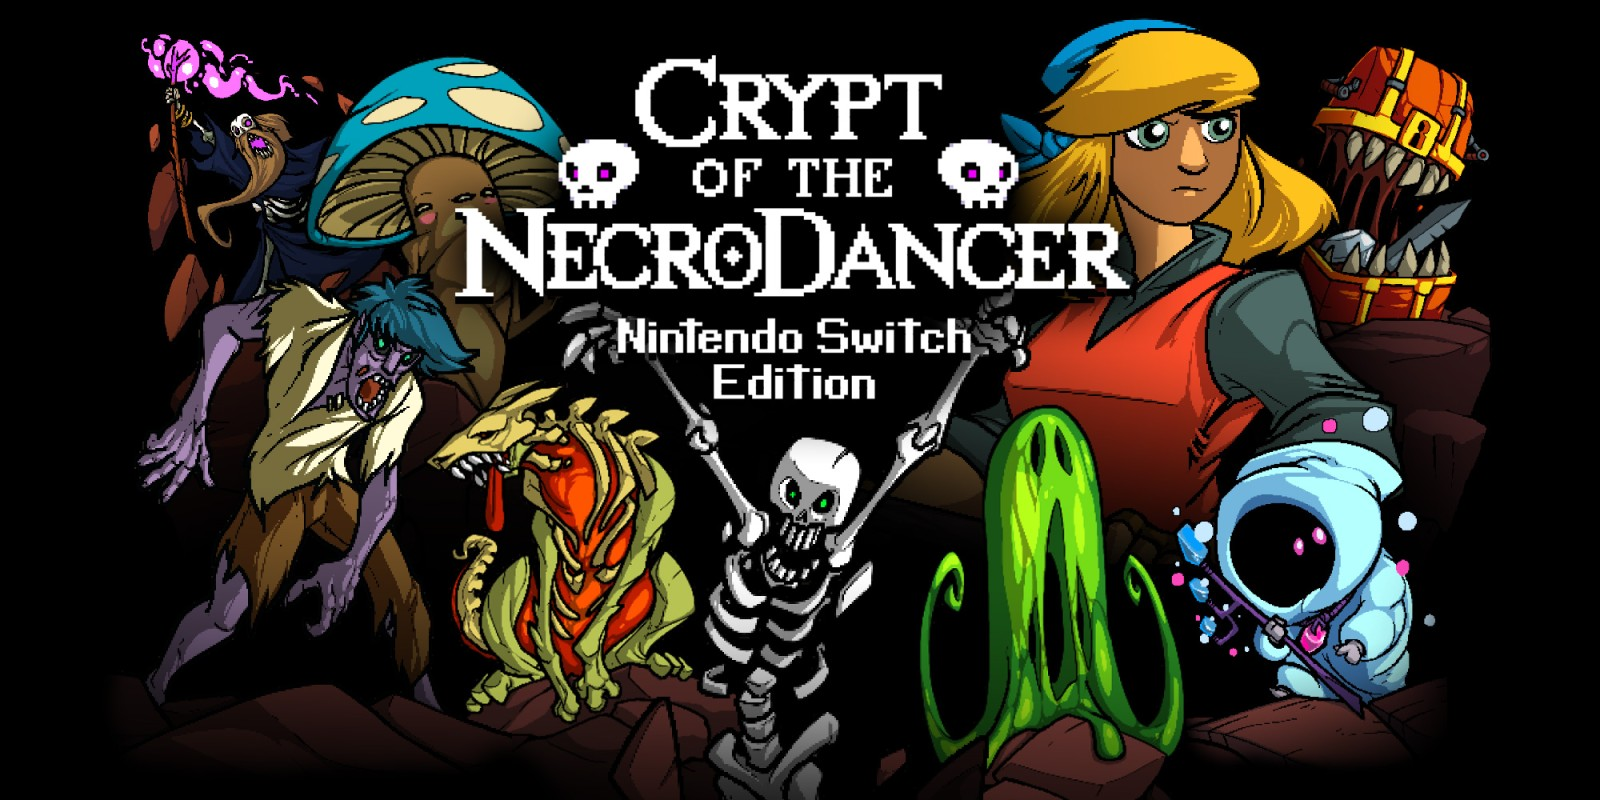 Resultado de imagen de portada Crypt of the NecroDancer: Nintendo Switch Edition